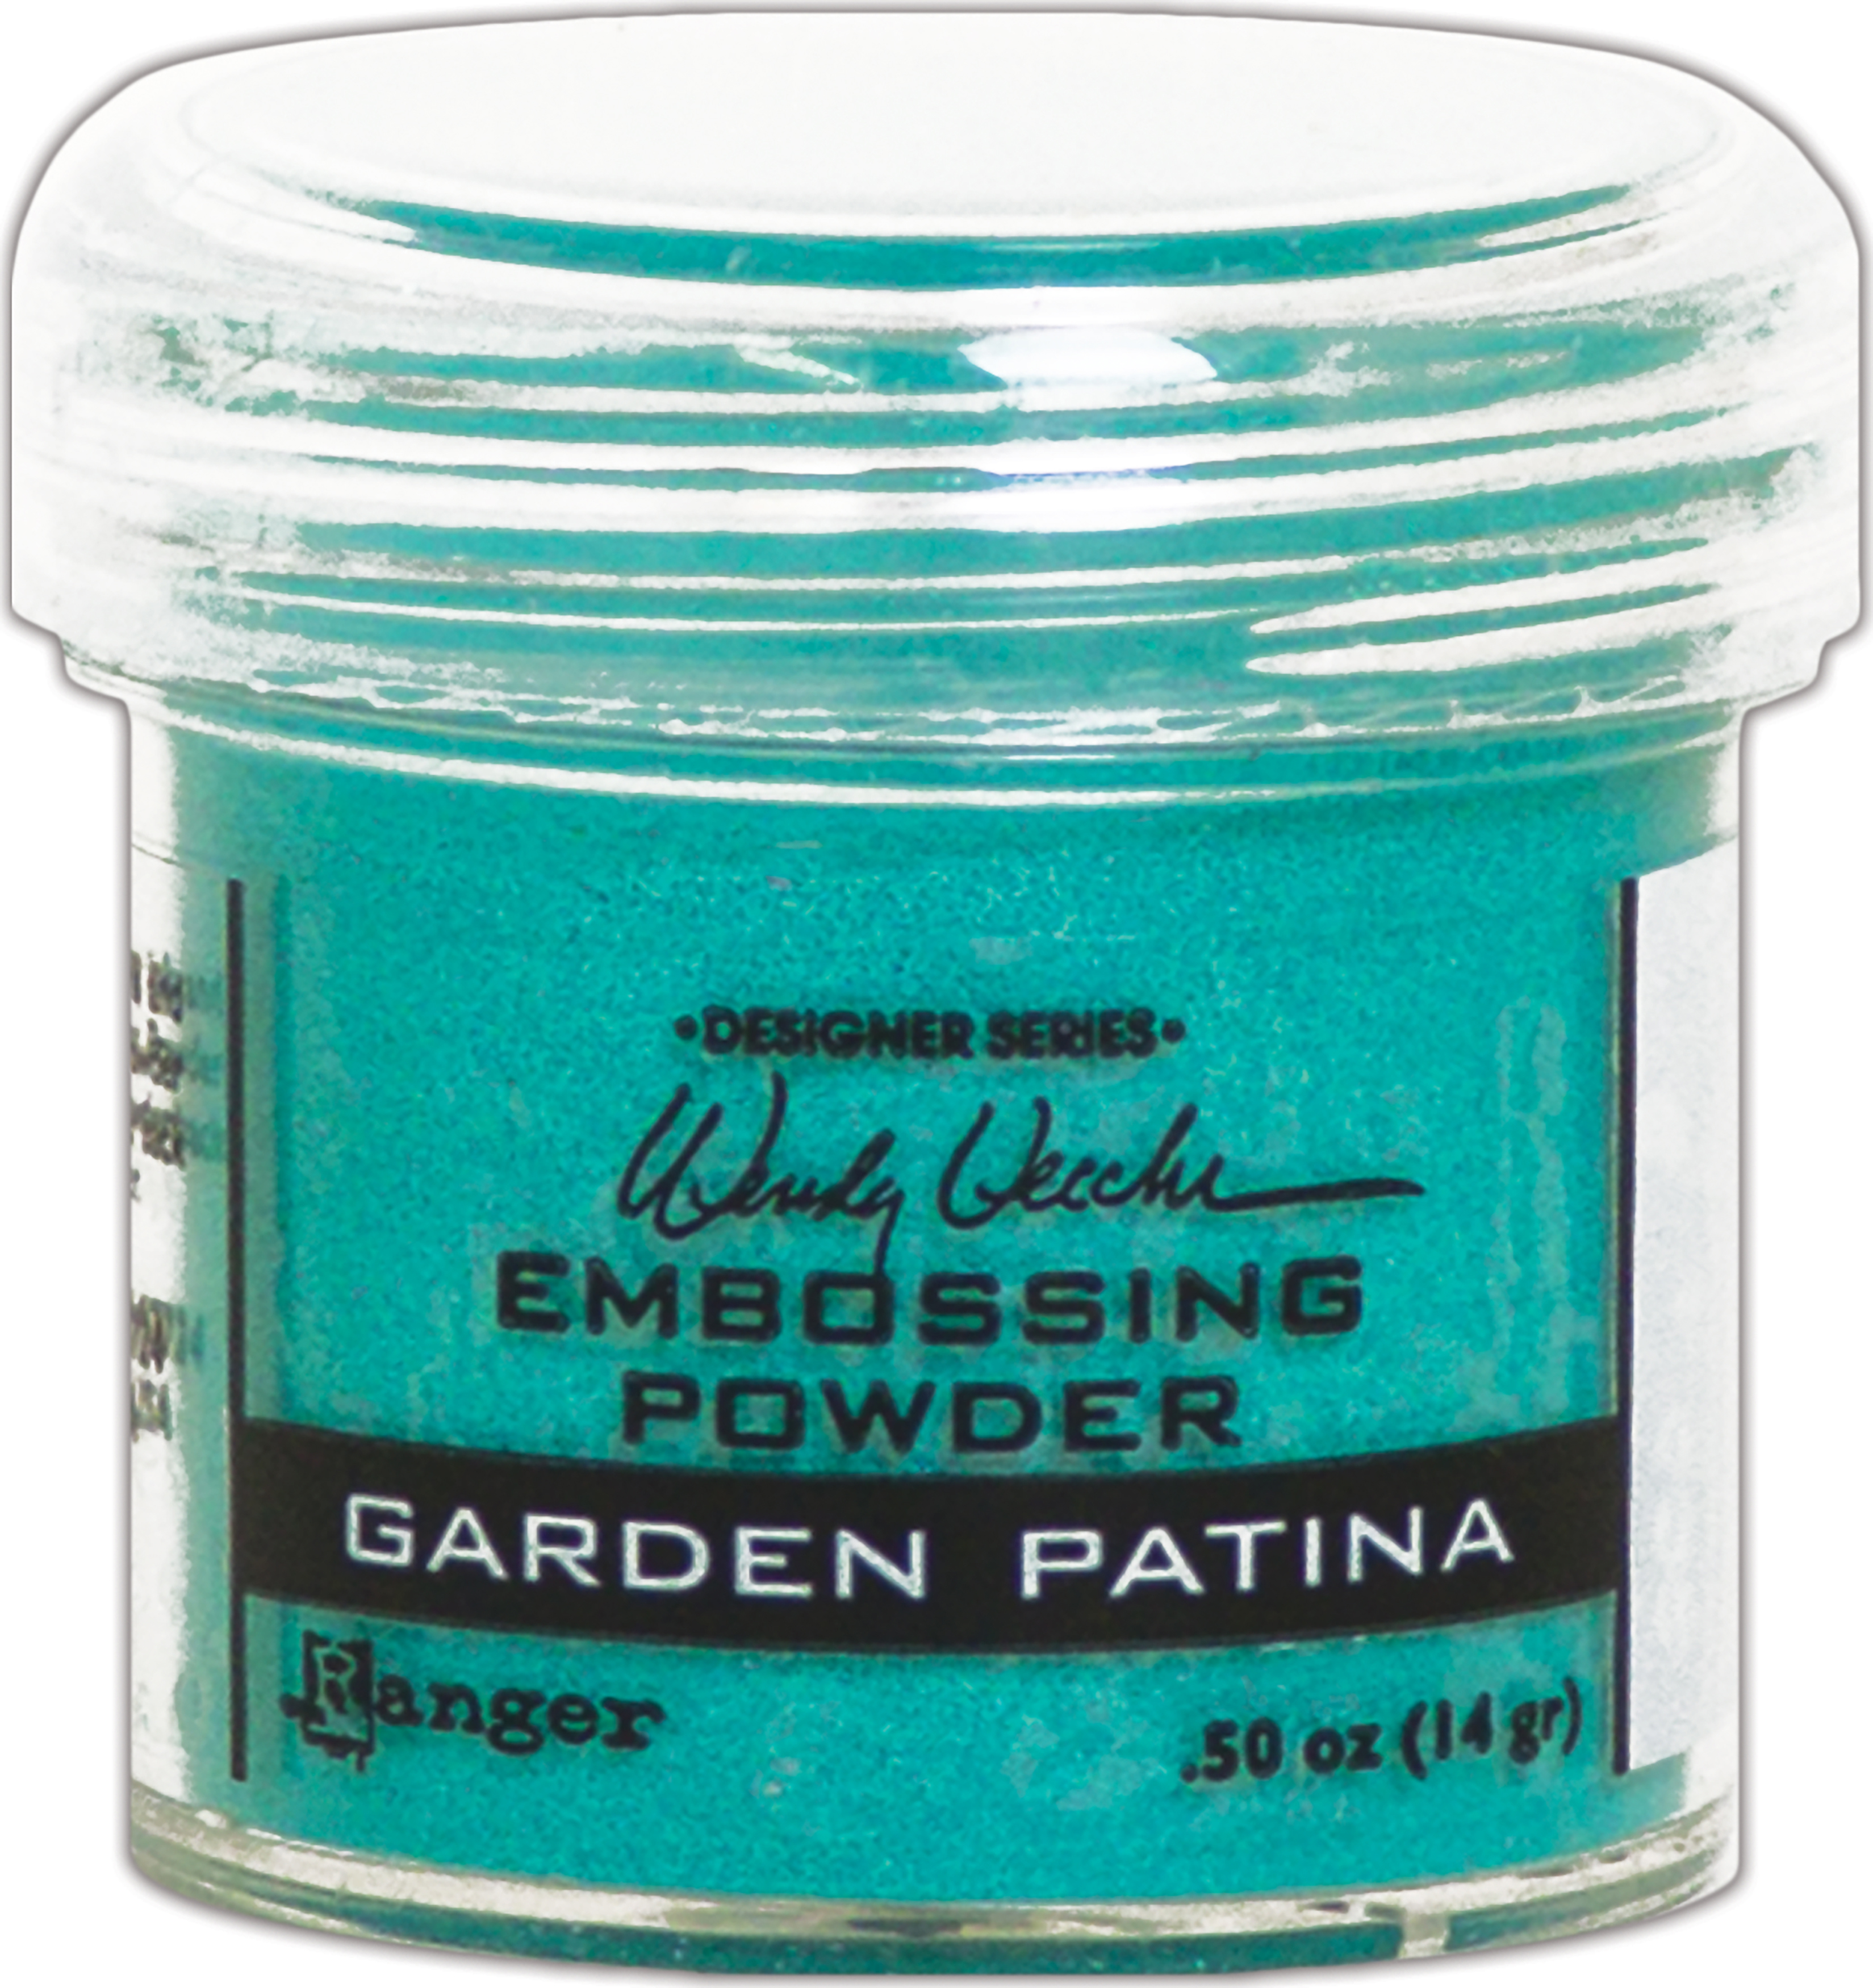 GARDEN PATINA-EMBOSSING POWDER